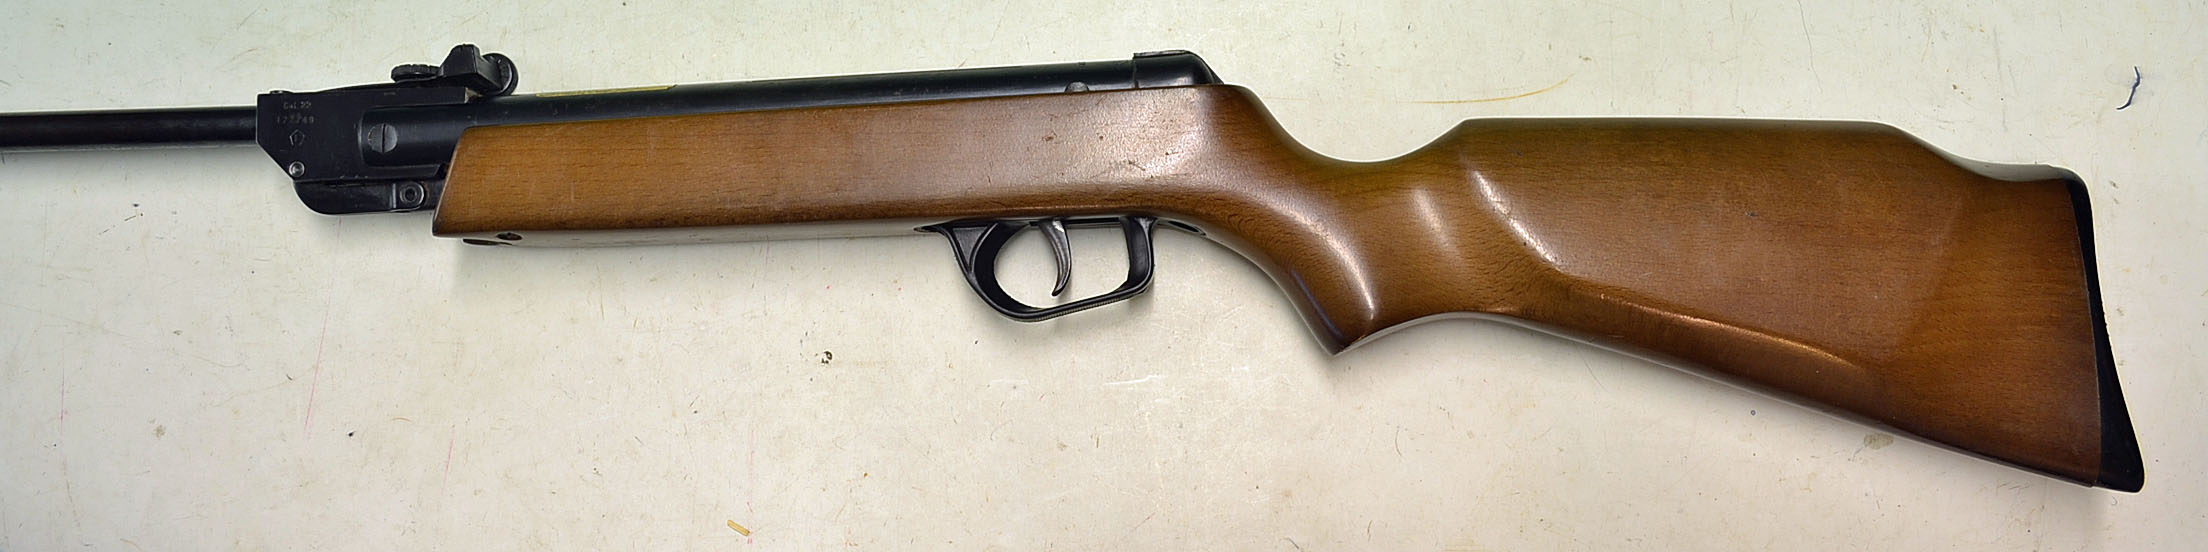 Lot 8 - ASI Sniper .22 air rifle with wooden stock model number 177749^ plastic recoil pad^ slight wear